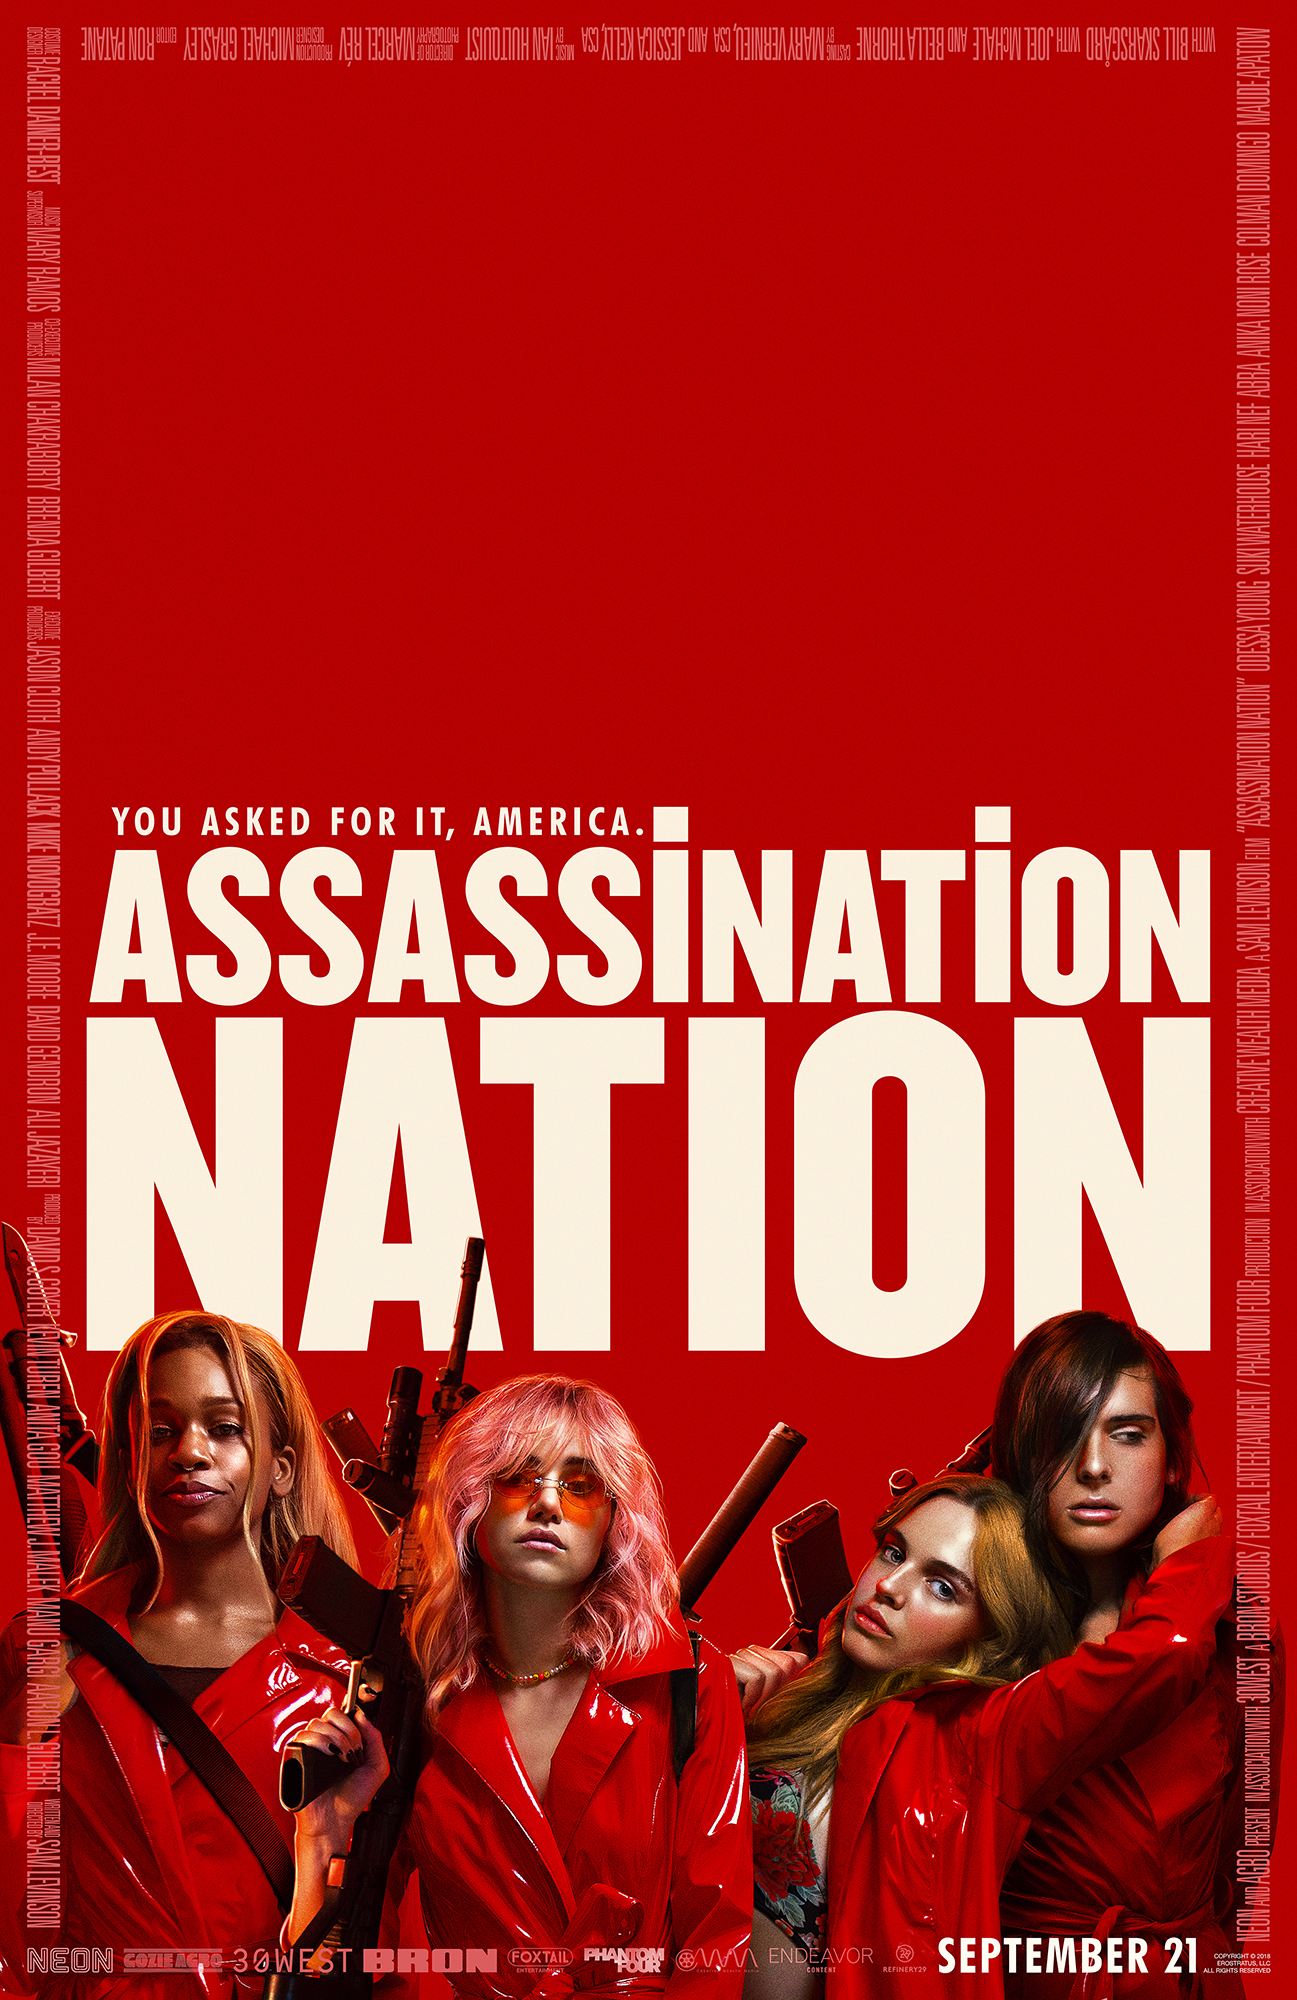 Assassination_Nation_1Sht_Payoff_VF_100dpi.jpg